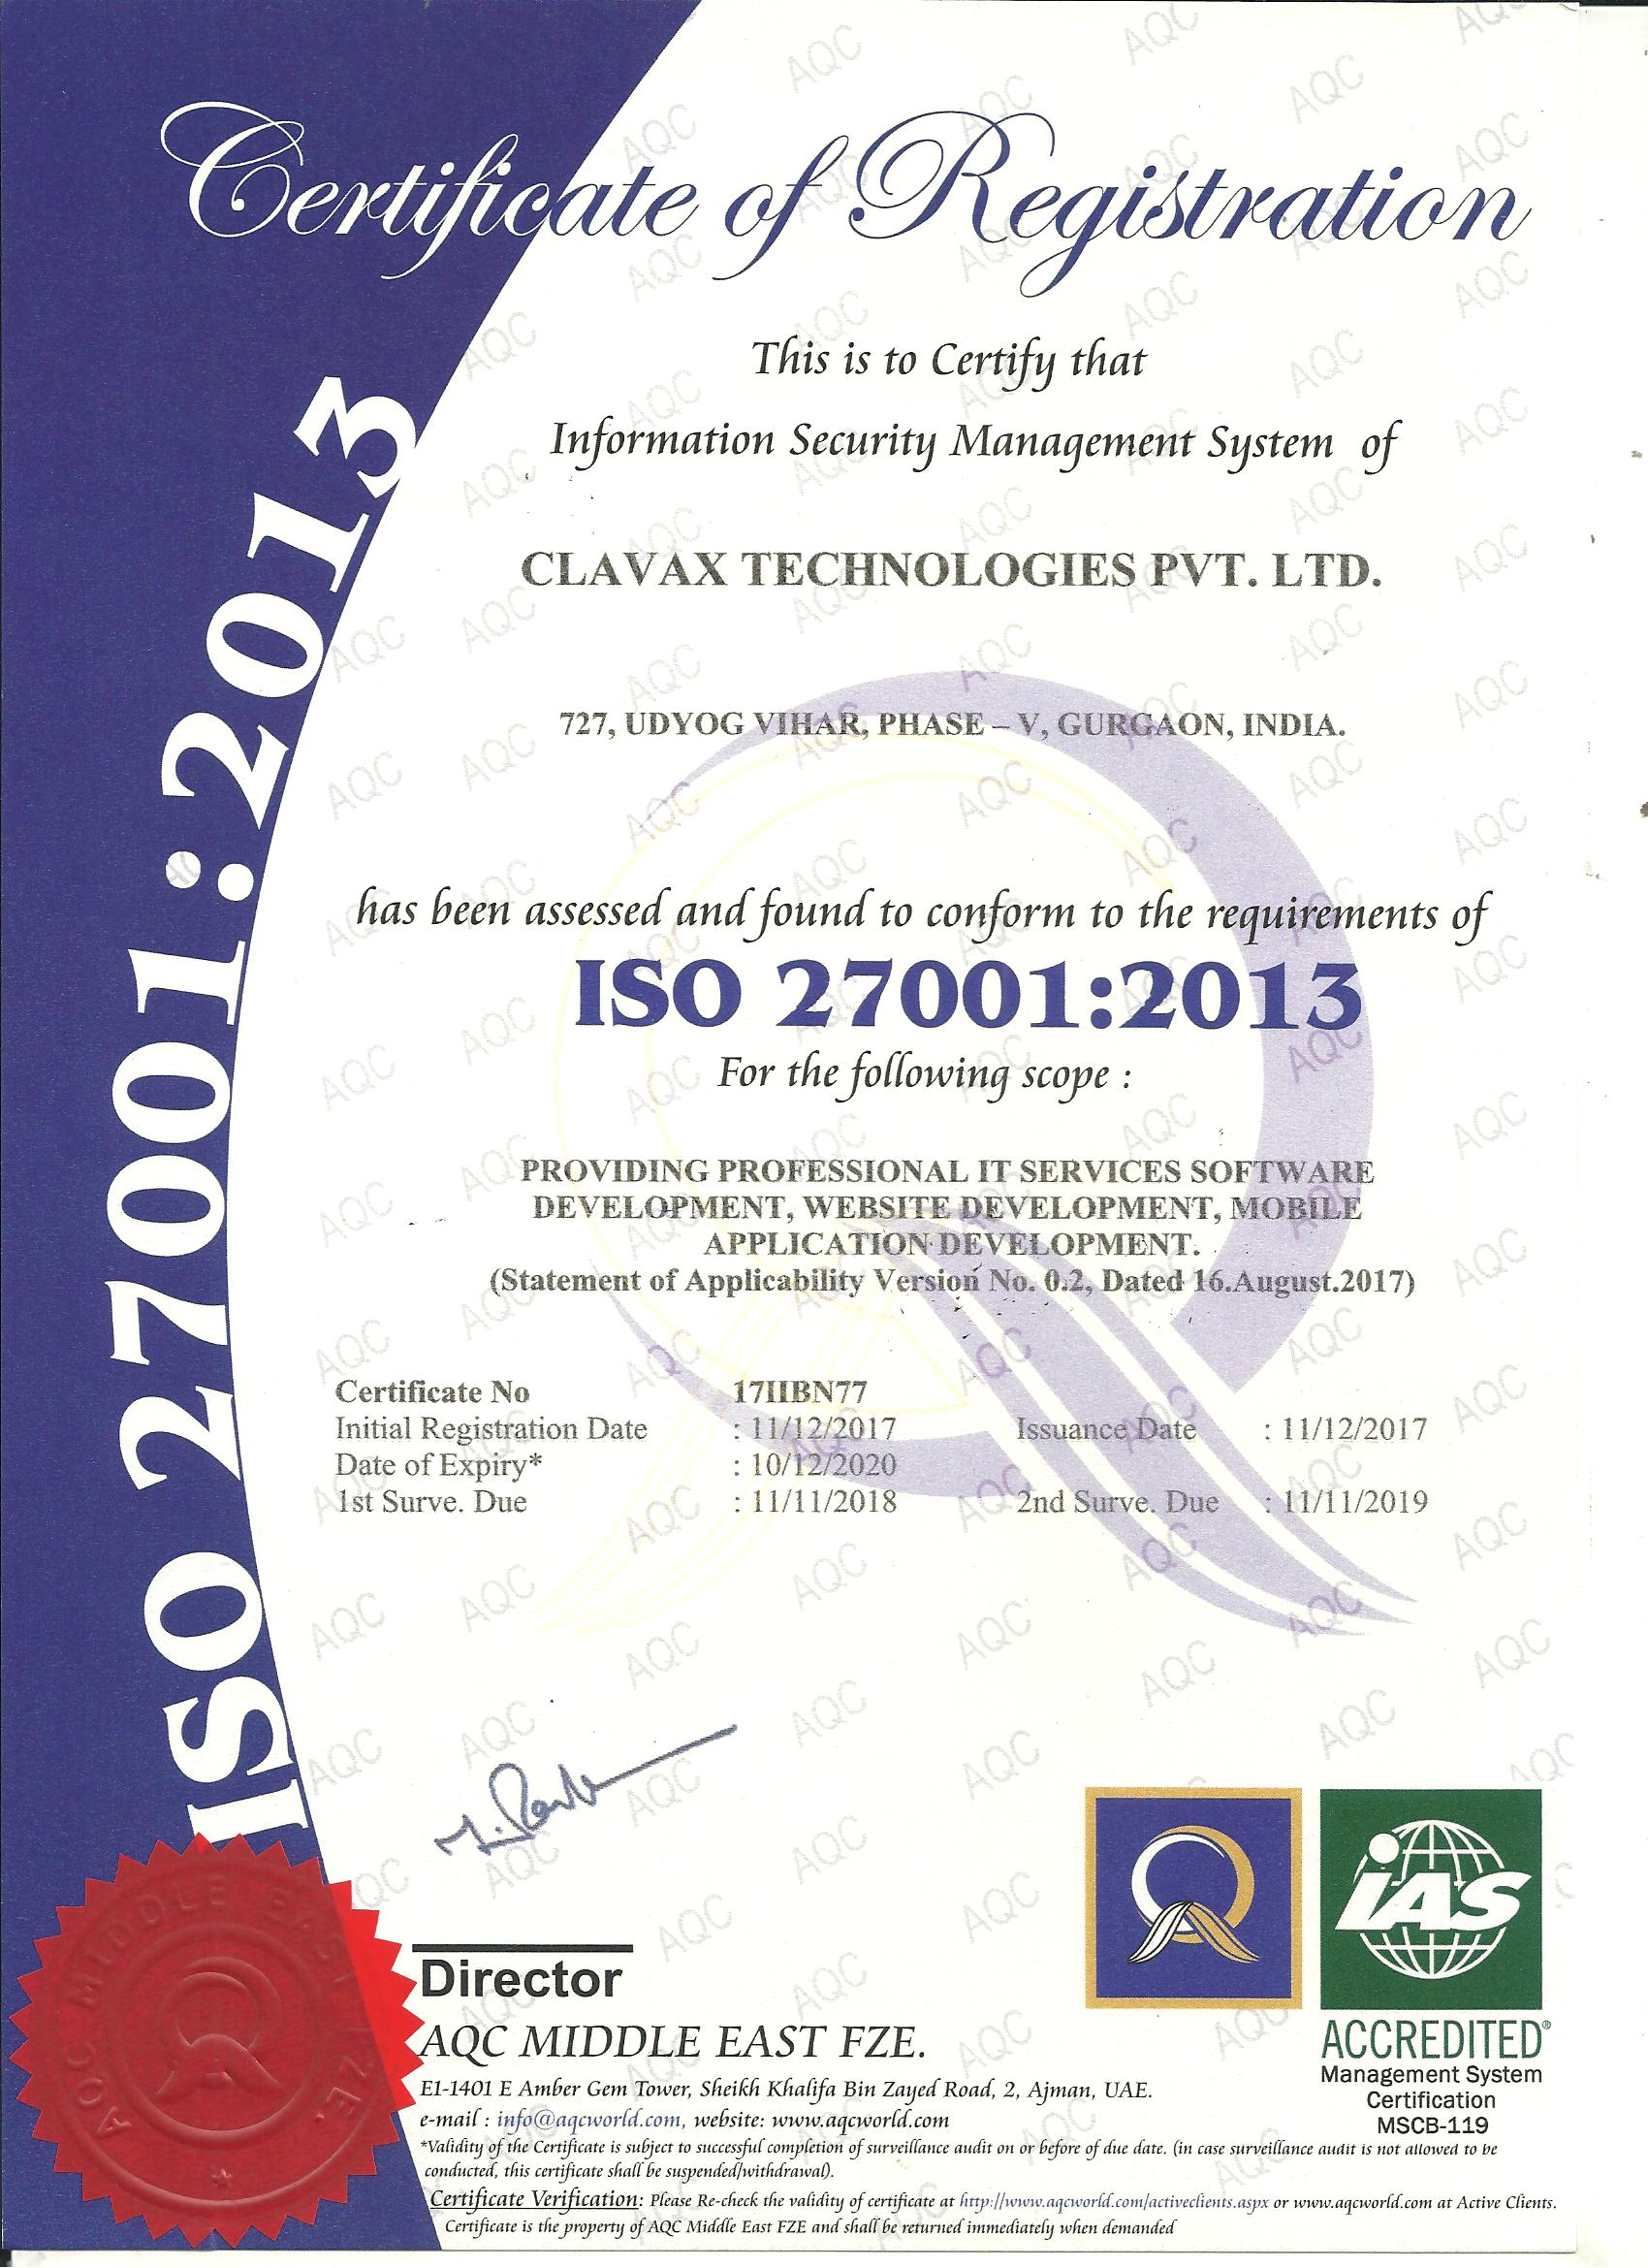 Clavax is awarded ISO 27001:2013 security accreditation